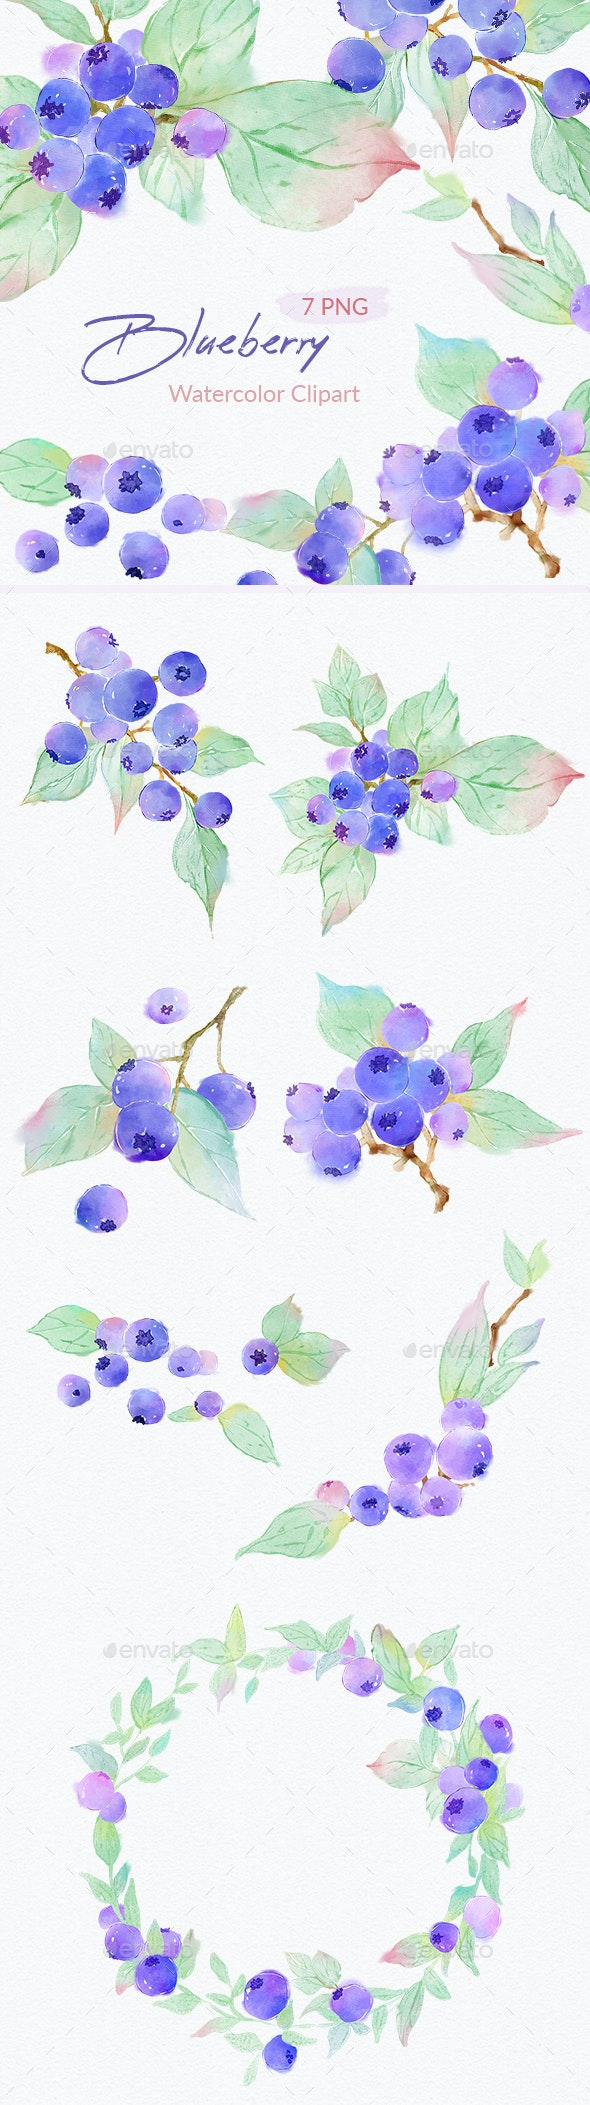 Blueberry Watercolor Illustrations Clipart - Graphics